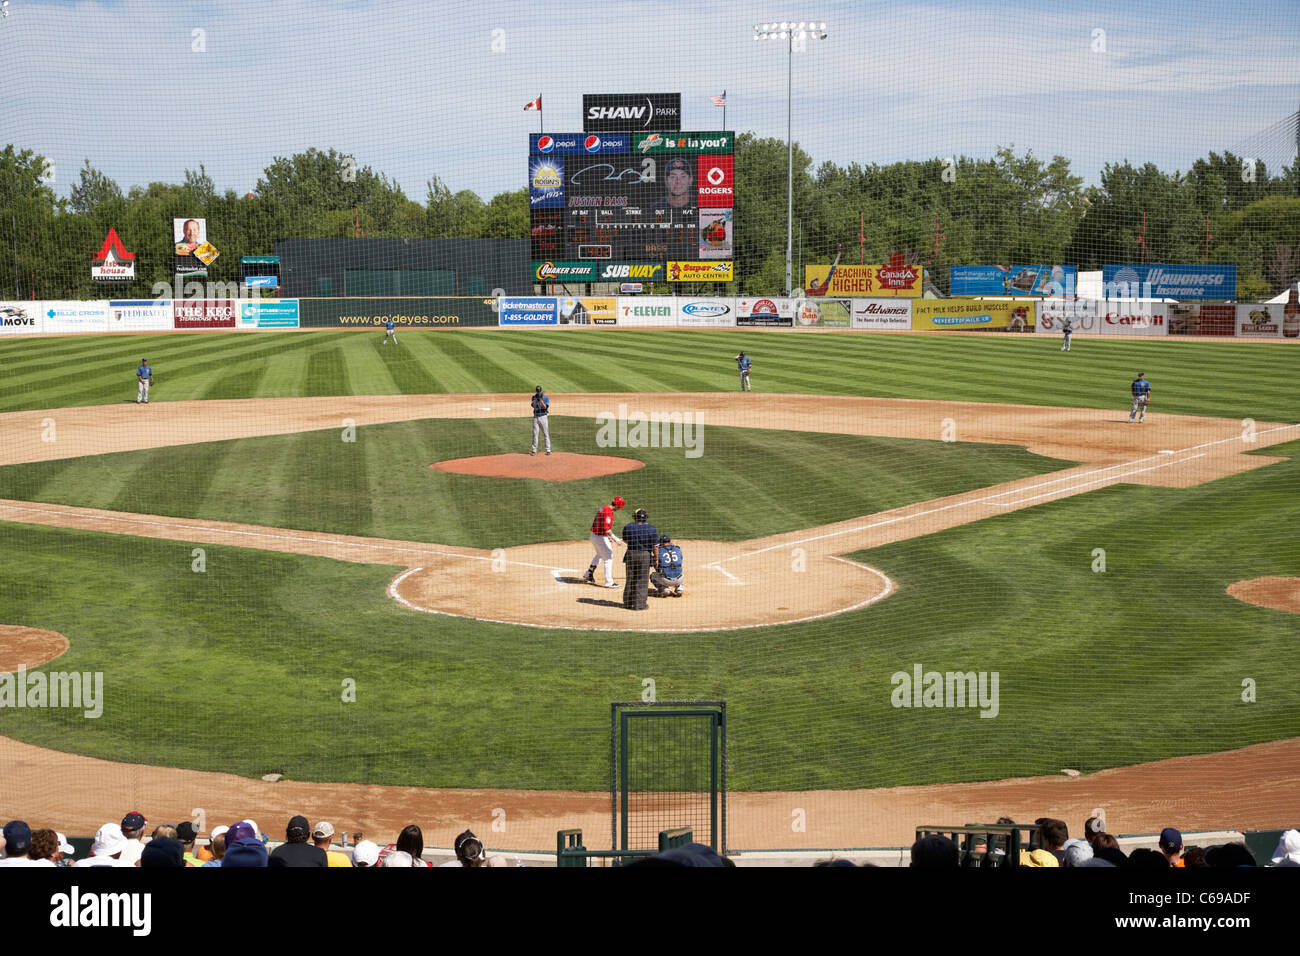 game ongoing behind safety net at shaw park baseball stadium formerly canwest home to the winnipeg goldeyes Winnipeg - Stock Image